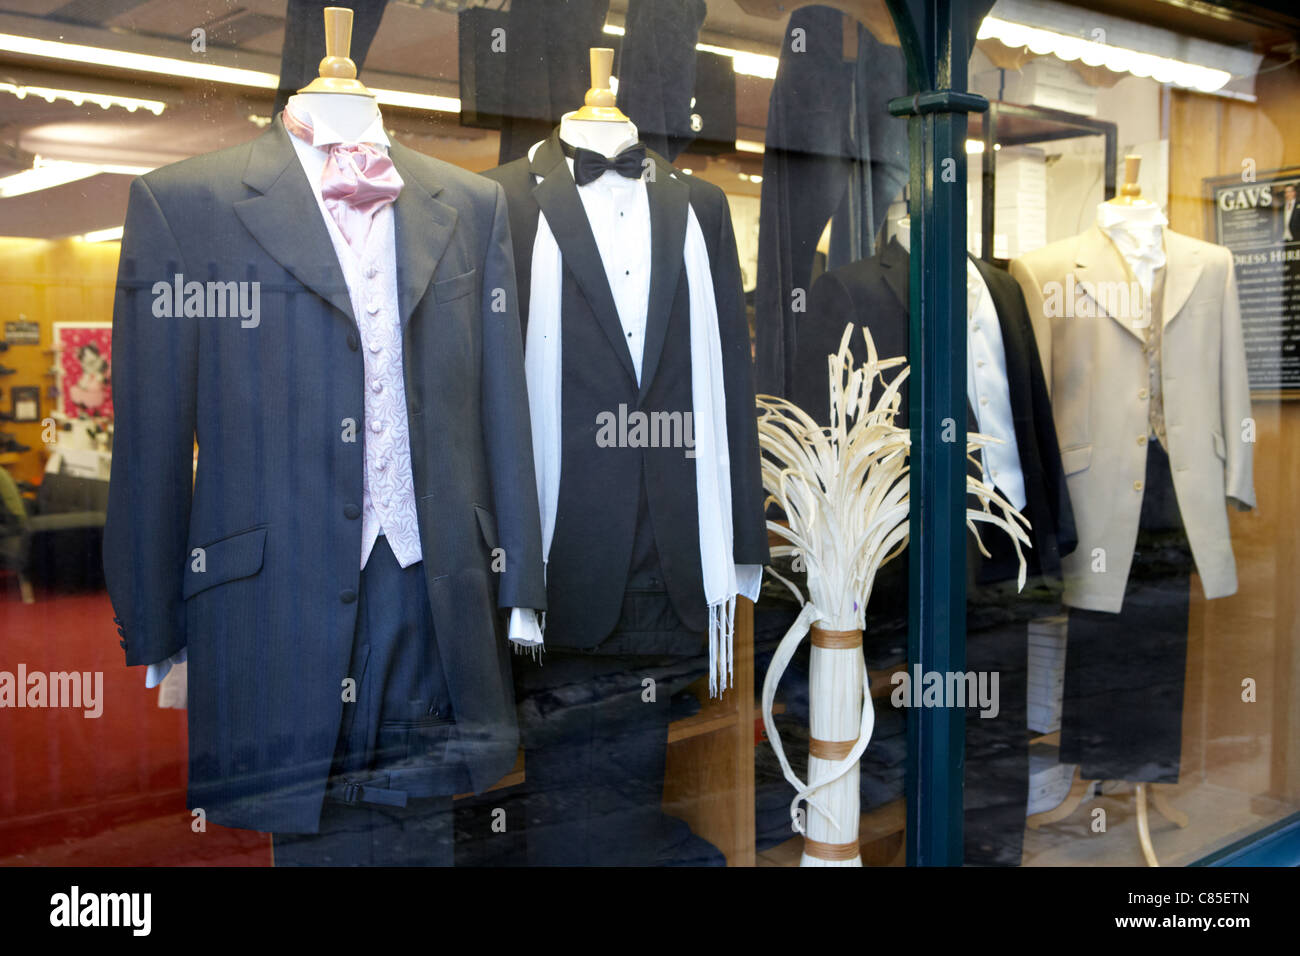 4e3c1259a7fd1 mens suits in the window of a dress hire shop in ireland Stock Photo ...